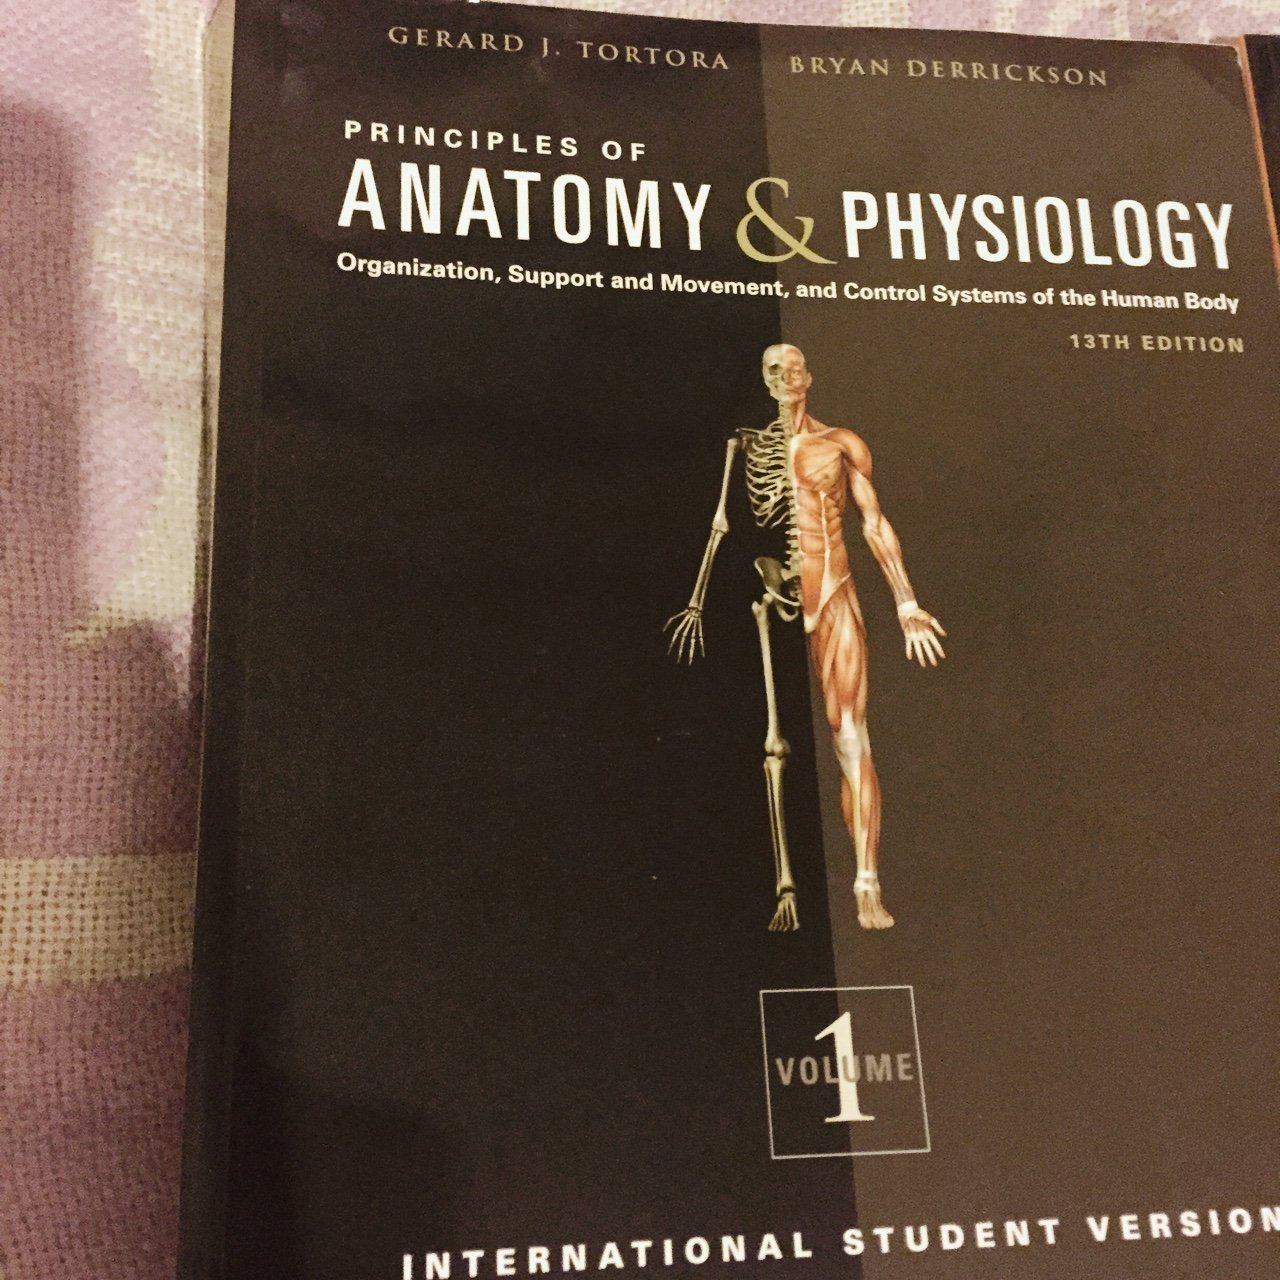 BARELY USED Principles of Anatomy & Physiology 13th edition - Depop